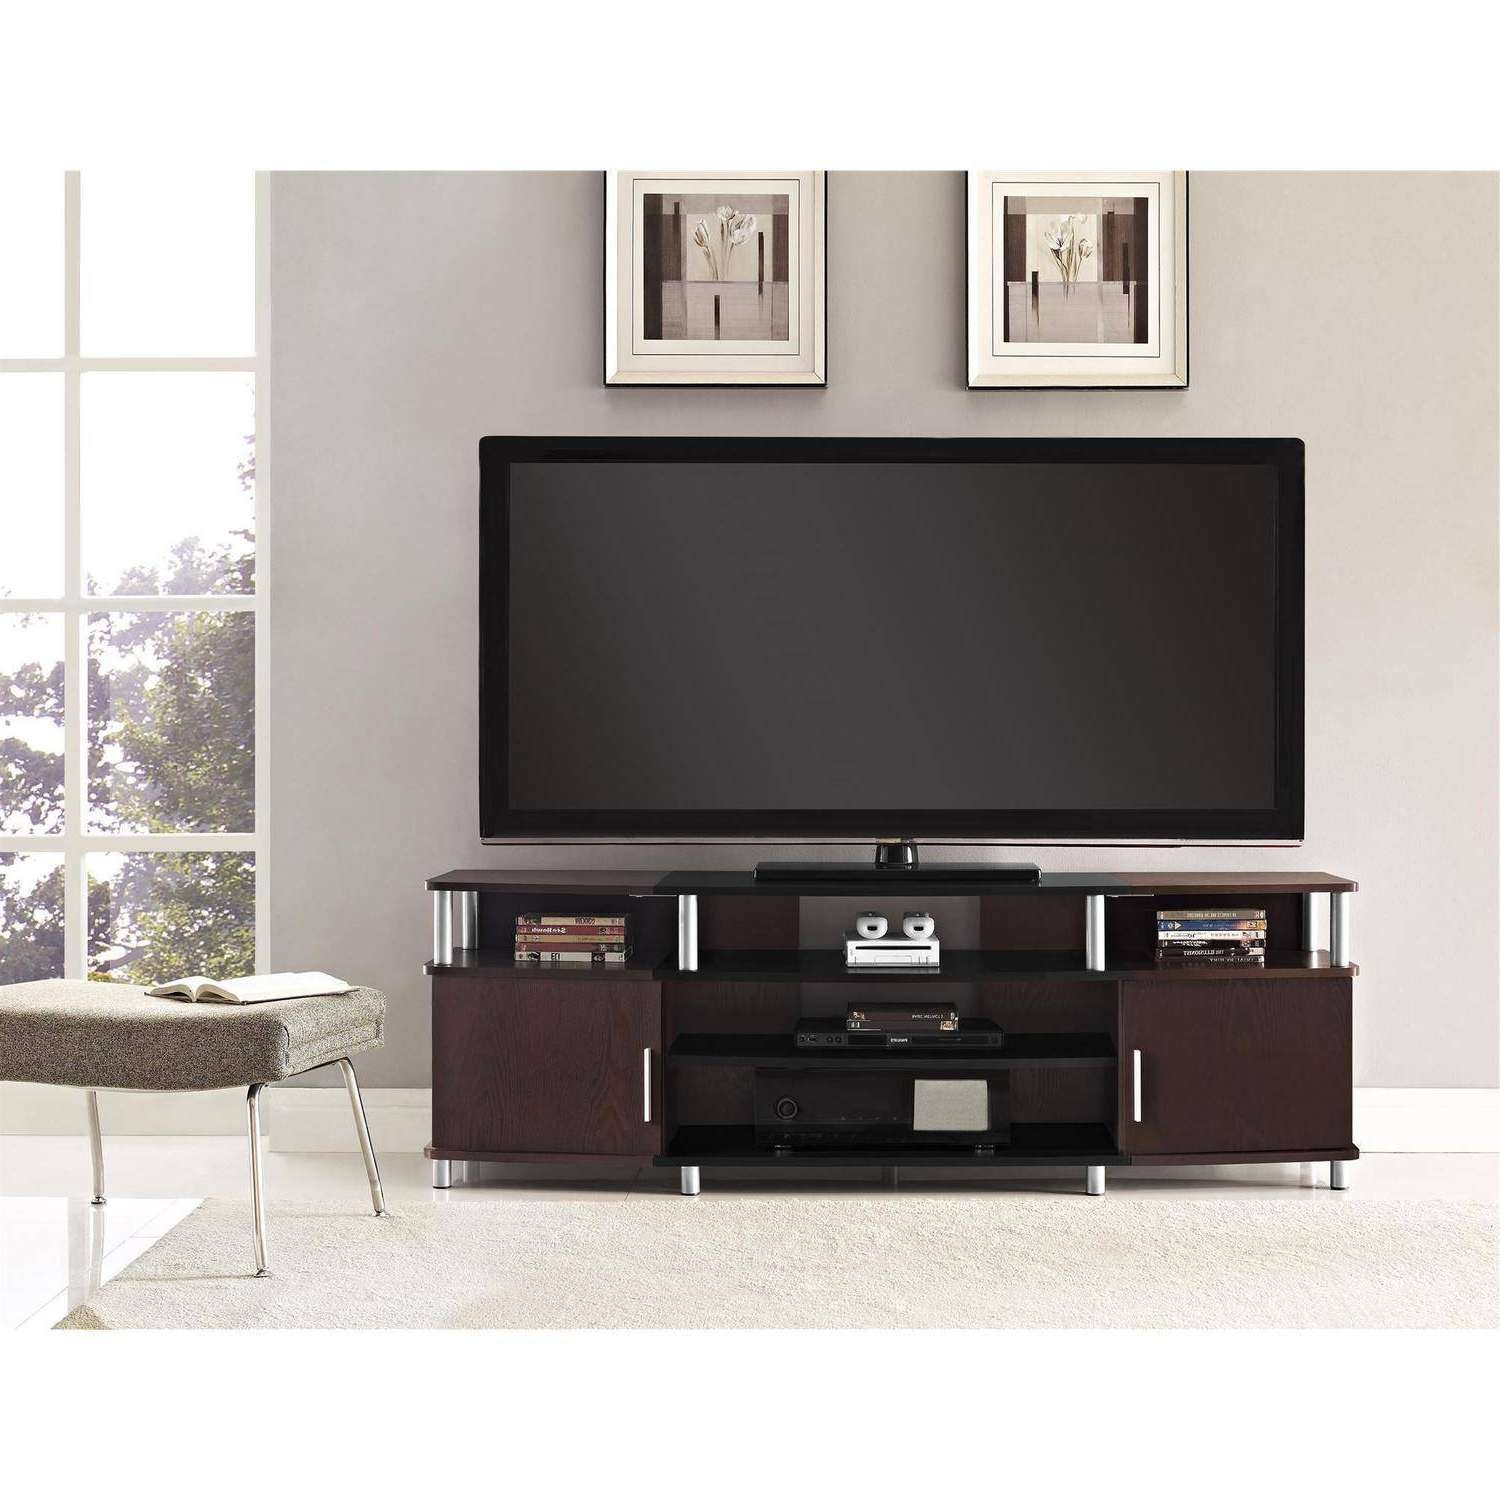 Cherry Wood Tv Stands For A 55 Inch Tv Standscherry Wood Tv Stands With Cherry Wood Tv Cabinets (View 19 of 20)